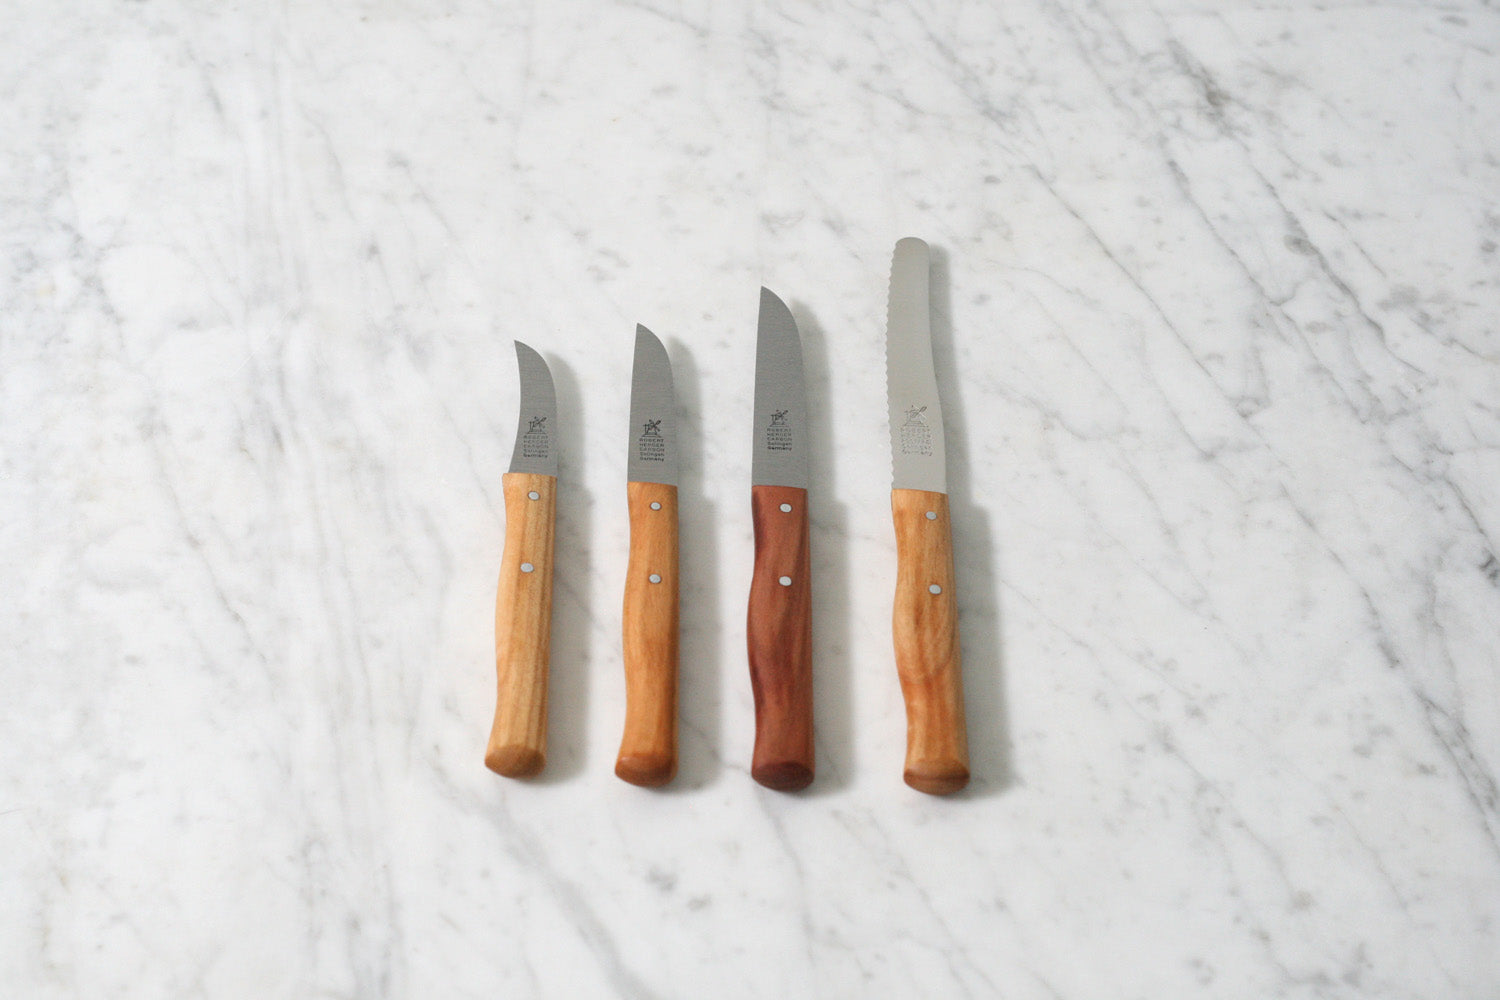 Robert Herder Bird's Beak Knife